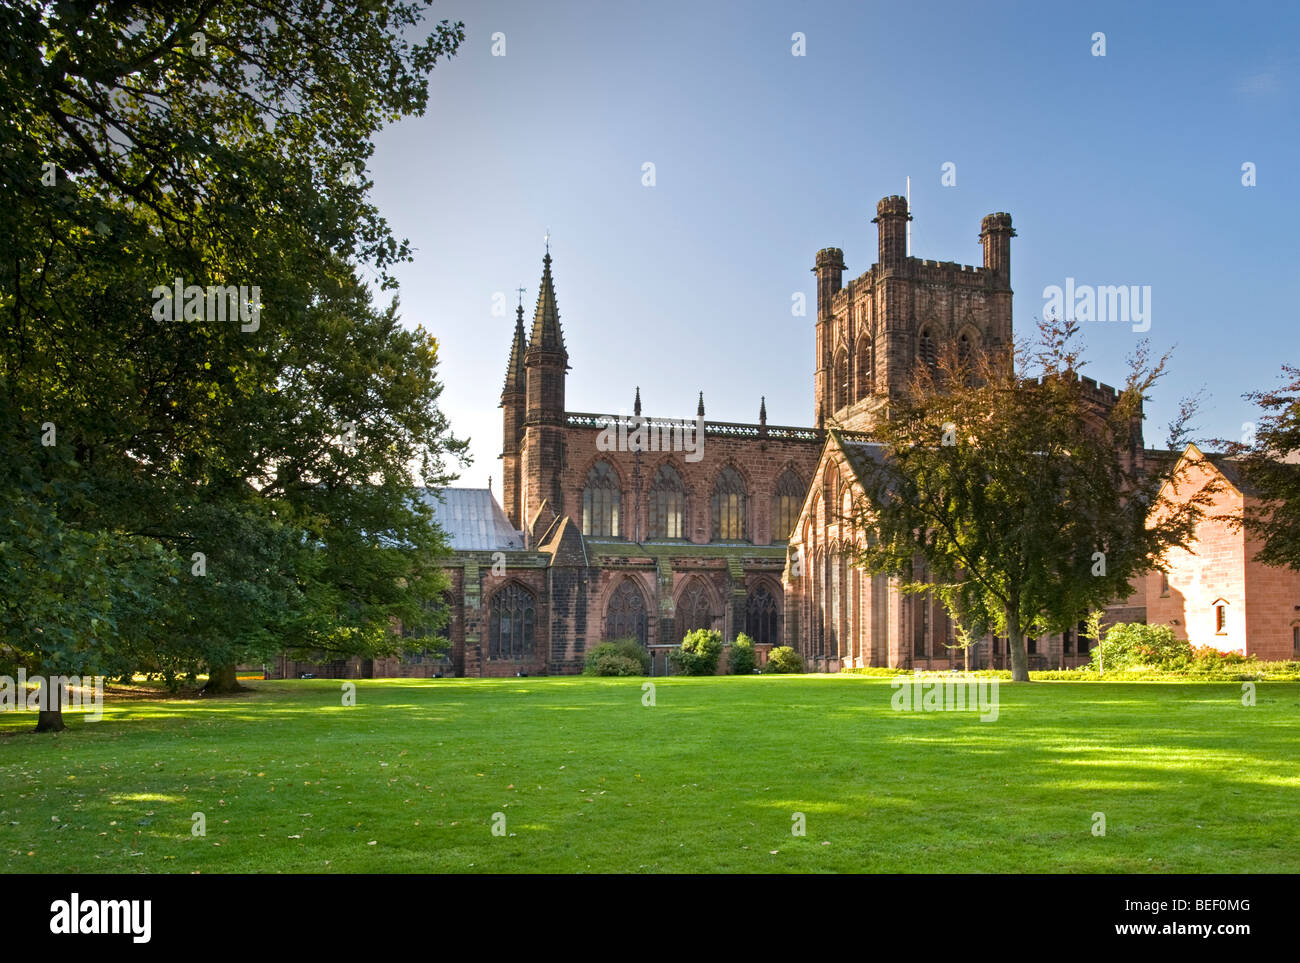 Chester Cathedral in Late Summer, Chester, Cheshire, England, UK - Stock Image